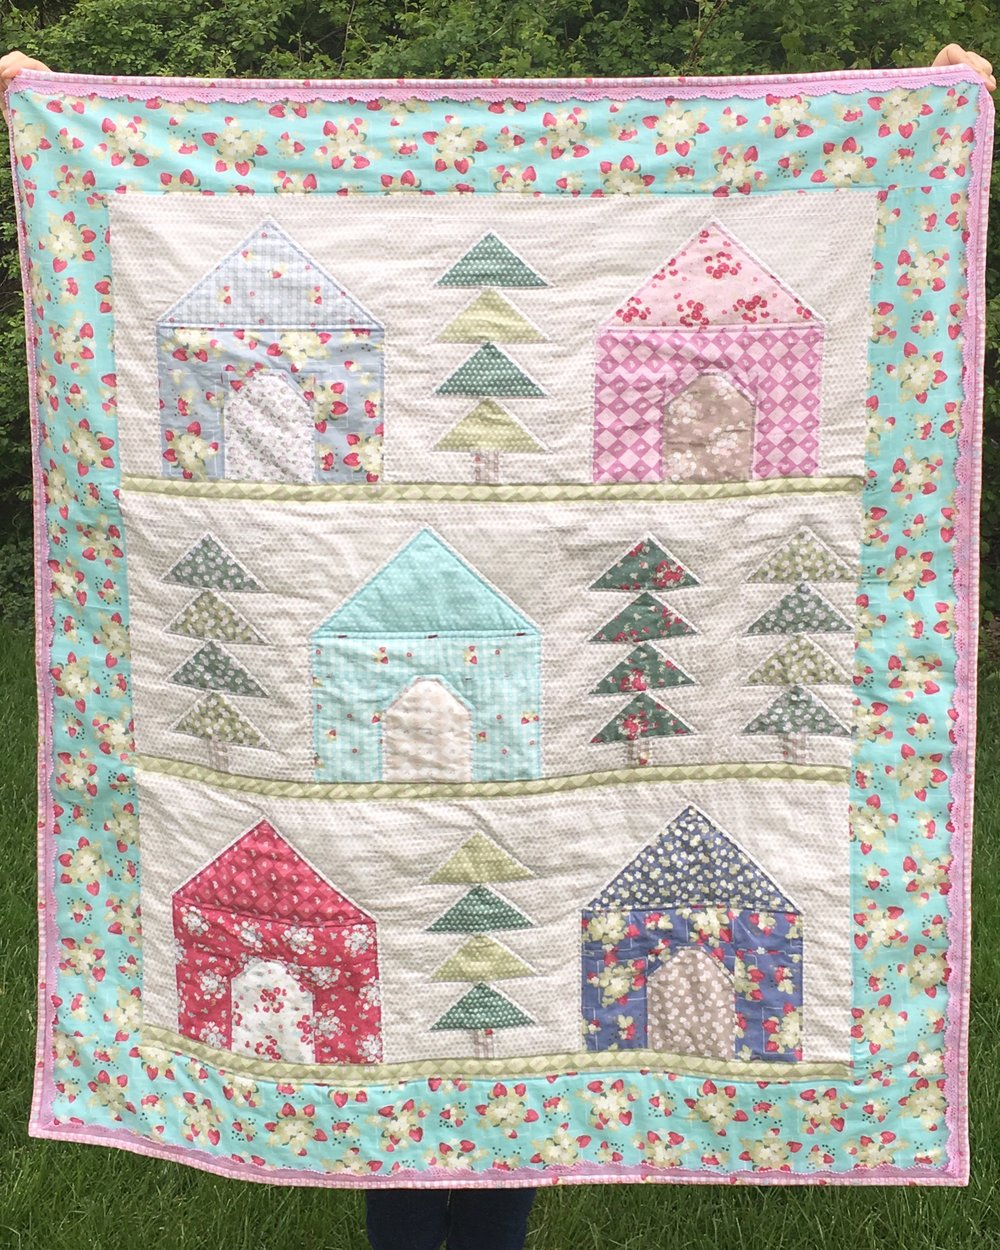 """Cozy Cabins Quilt"" created by Faith Essenburg - designed by Jera Brandvig"